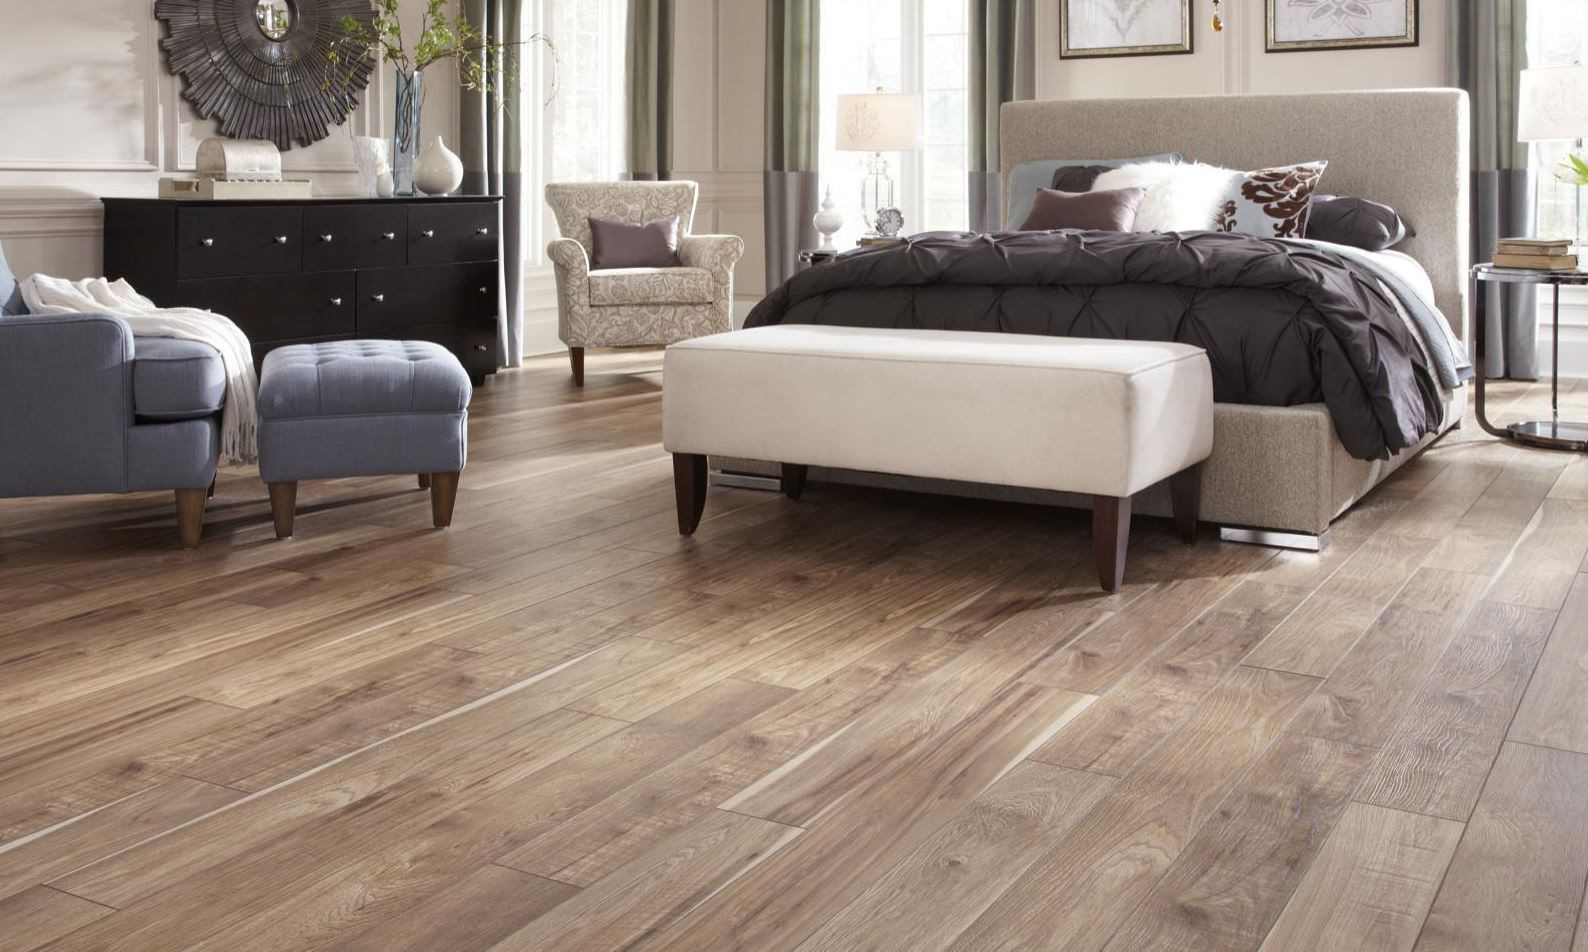 armstrong maple hardwood flooring of luxury vinyl plank flooring that looks like wood for mannington adura luxury vinyl plank flooring 57aa7d065f9b58974a2be49e jpg